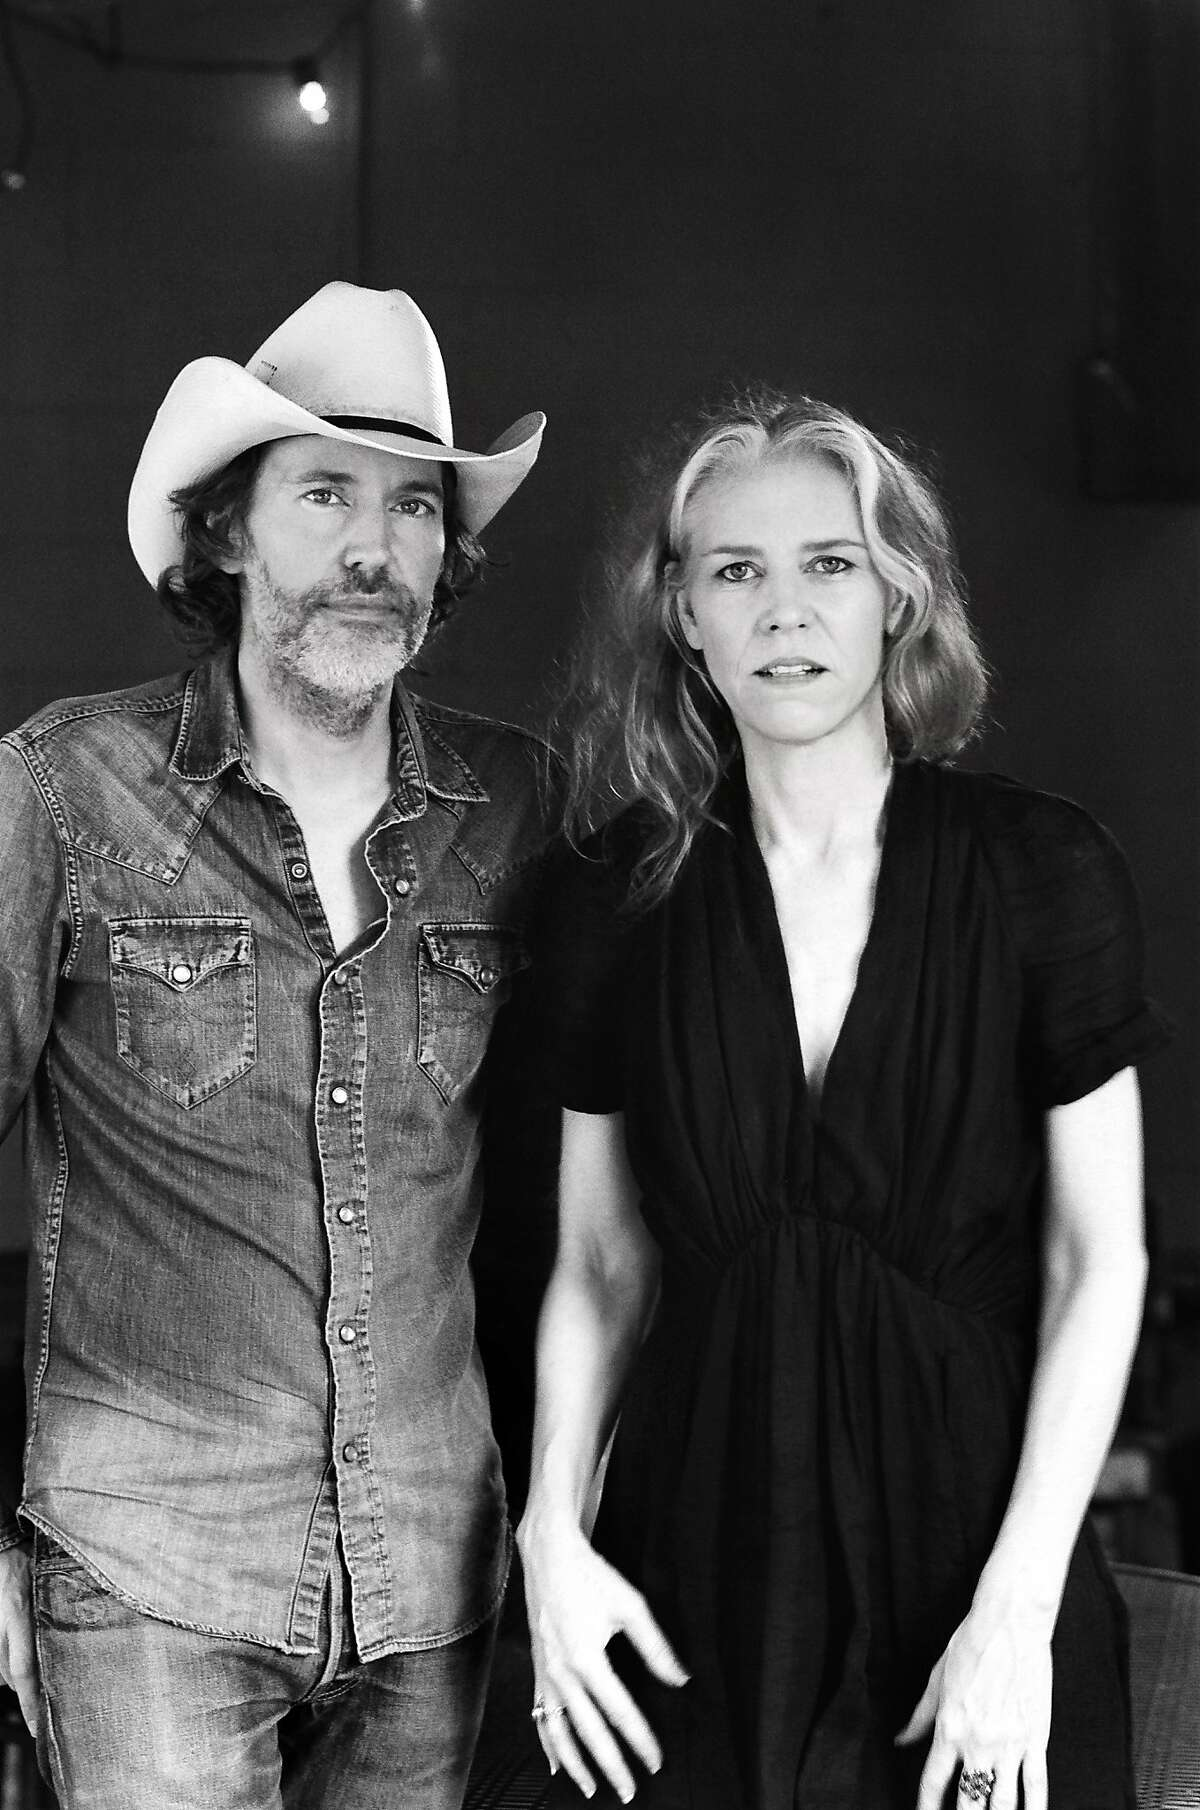 Americana musician David Rawlings of the Dave Rawlings Machine, which features Gillian Welch